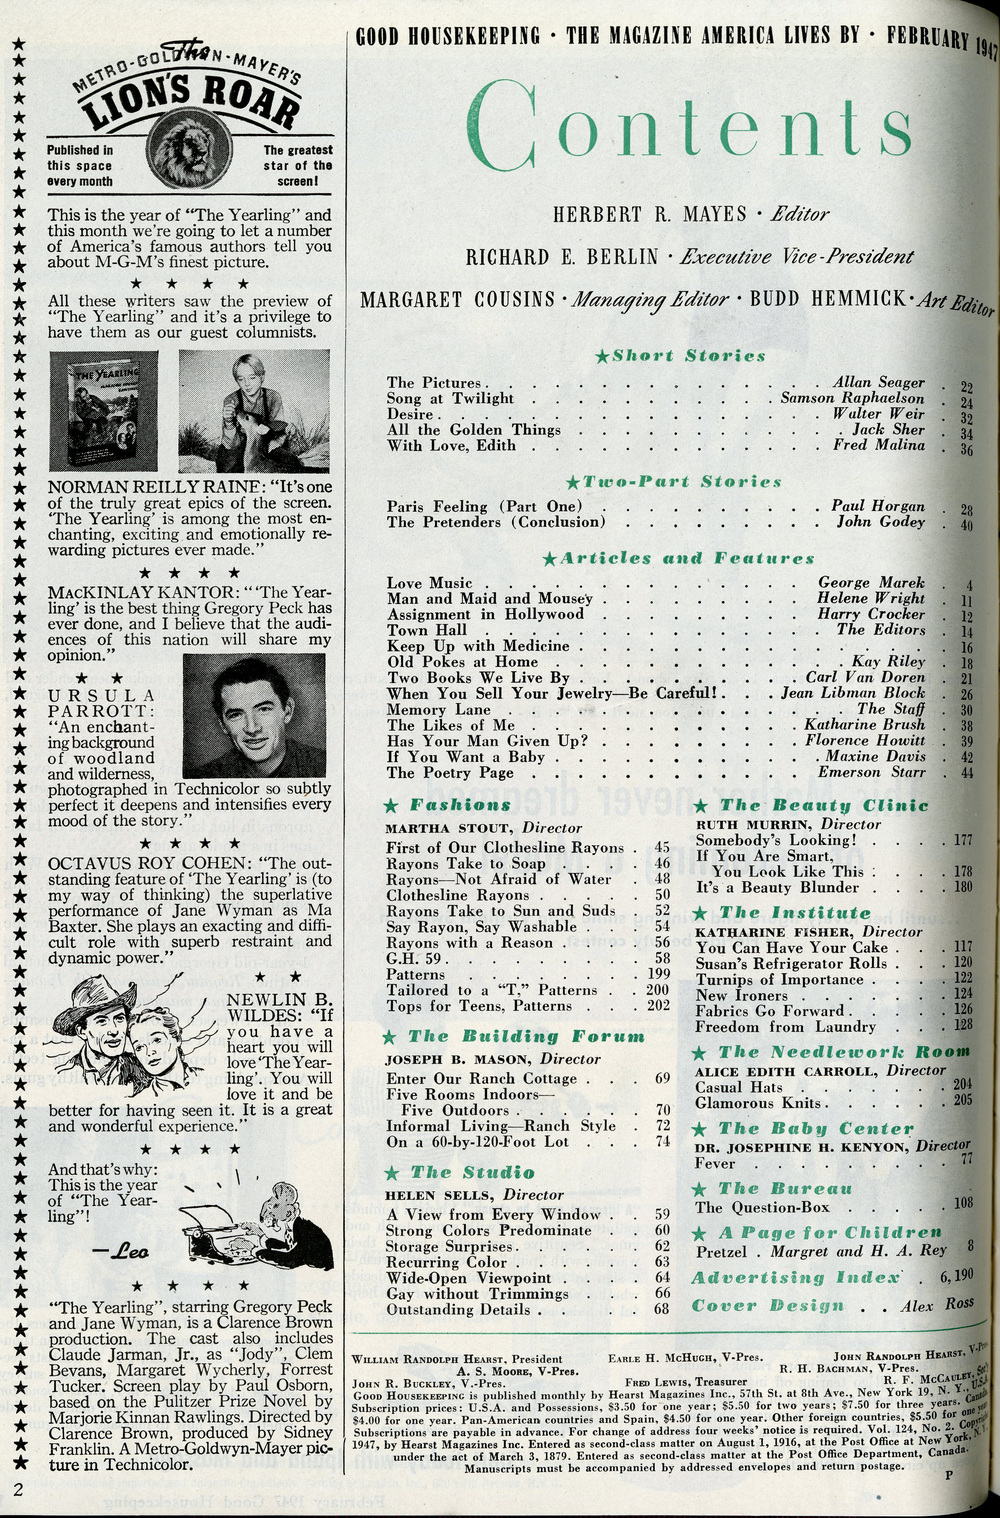 Table of Contents, Good Housekeeping, February 1947.